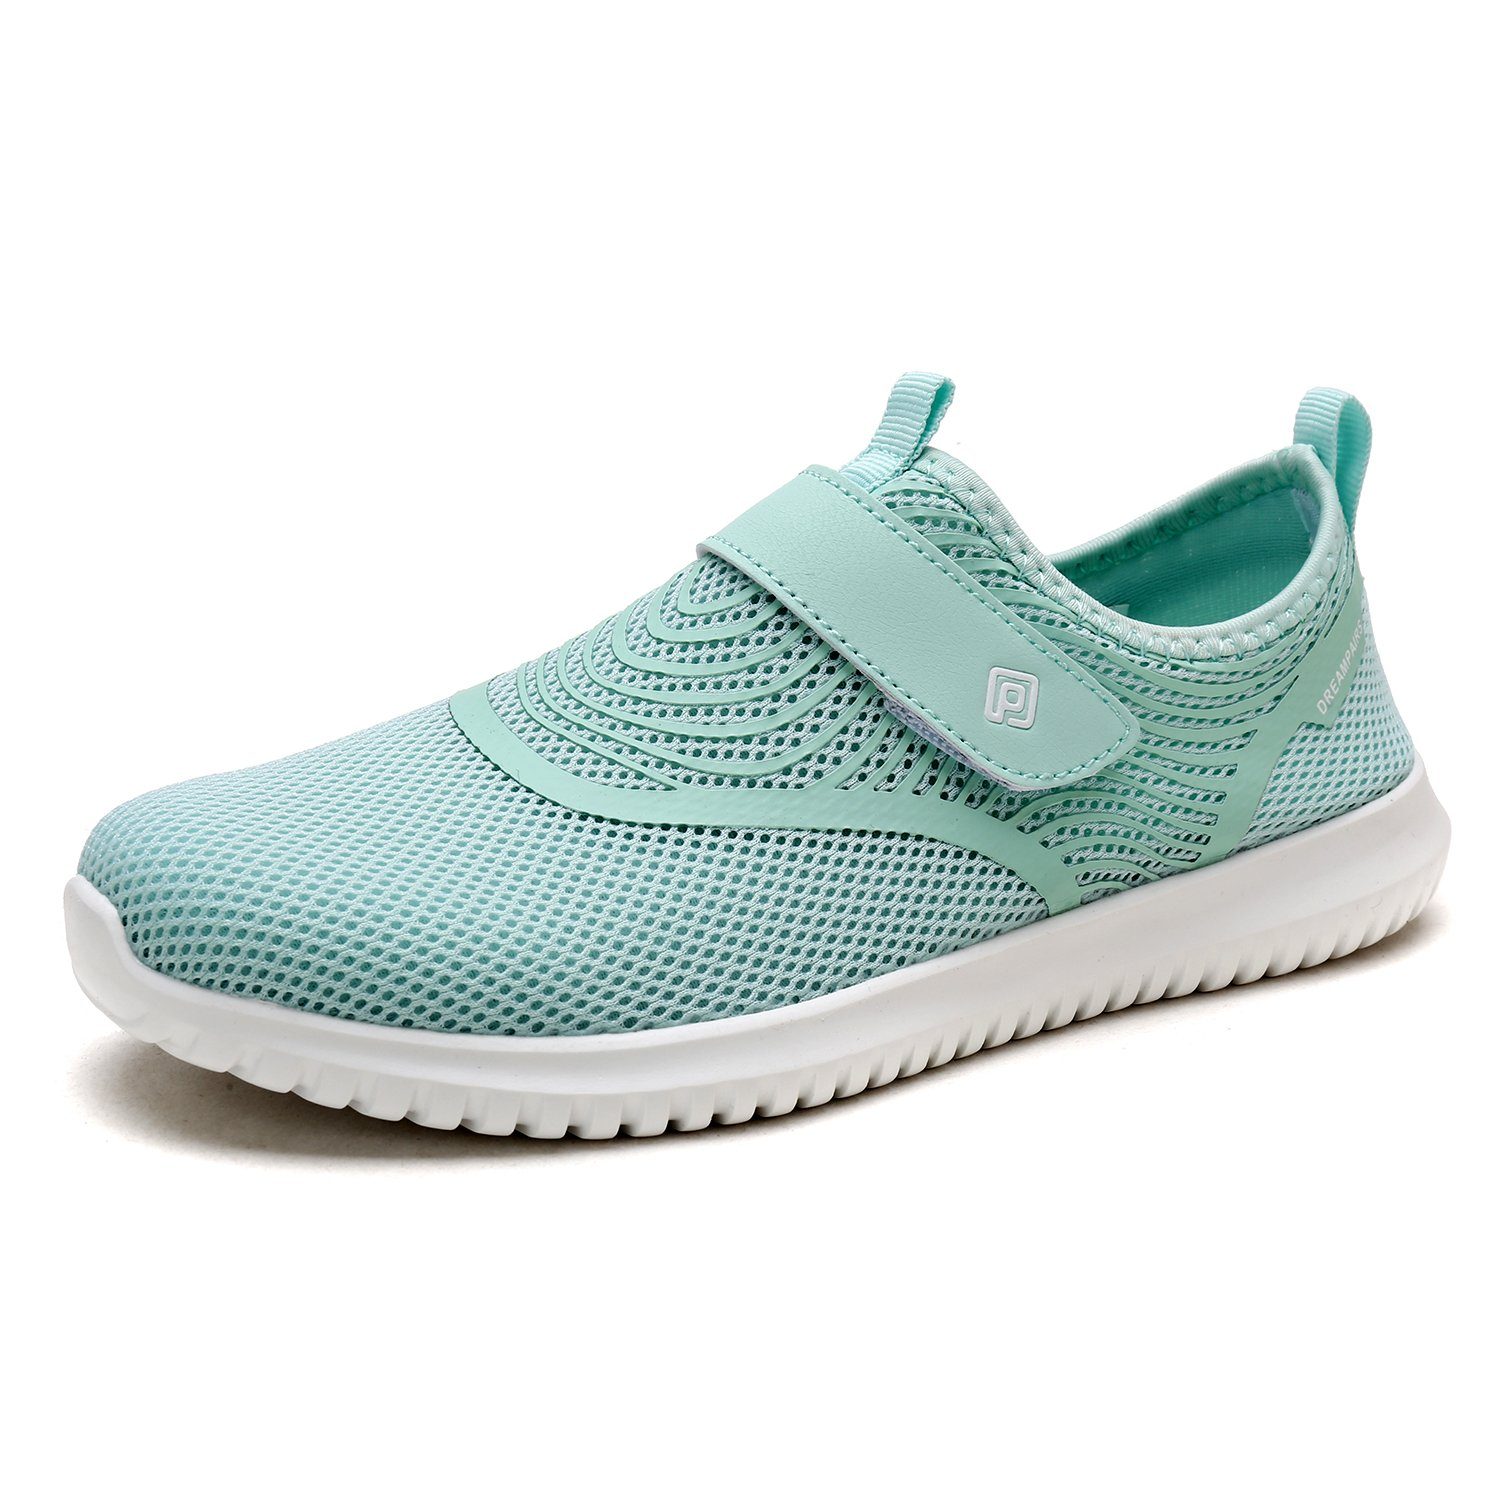 DREAM PAIRS Quick-Dry Water Shoes Sports Walking Casual Sneakers for Women B0788C9WQ5 9 M US|Lt.green